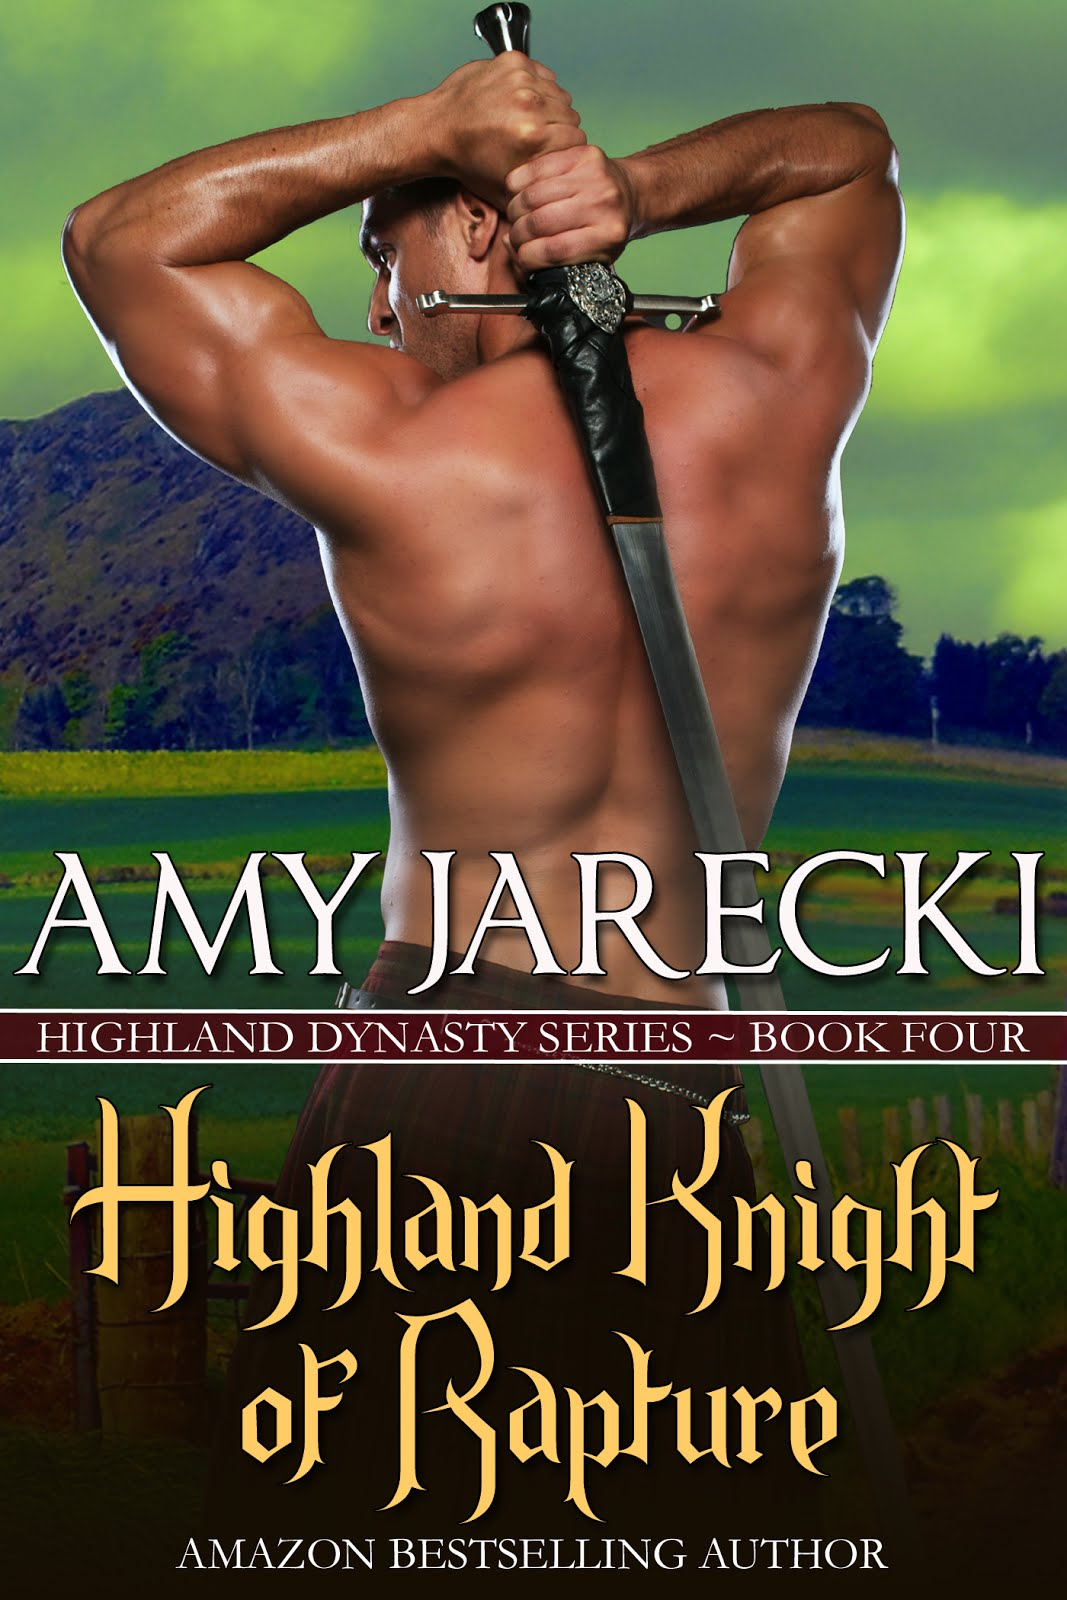 Highland Dynasty - Book 4